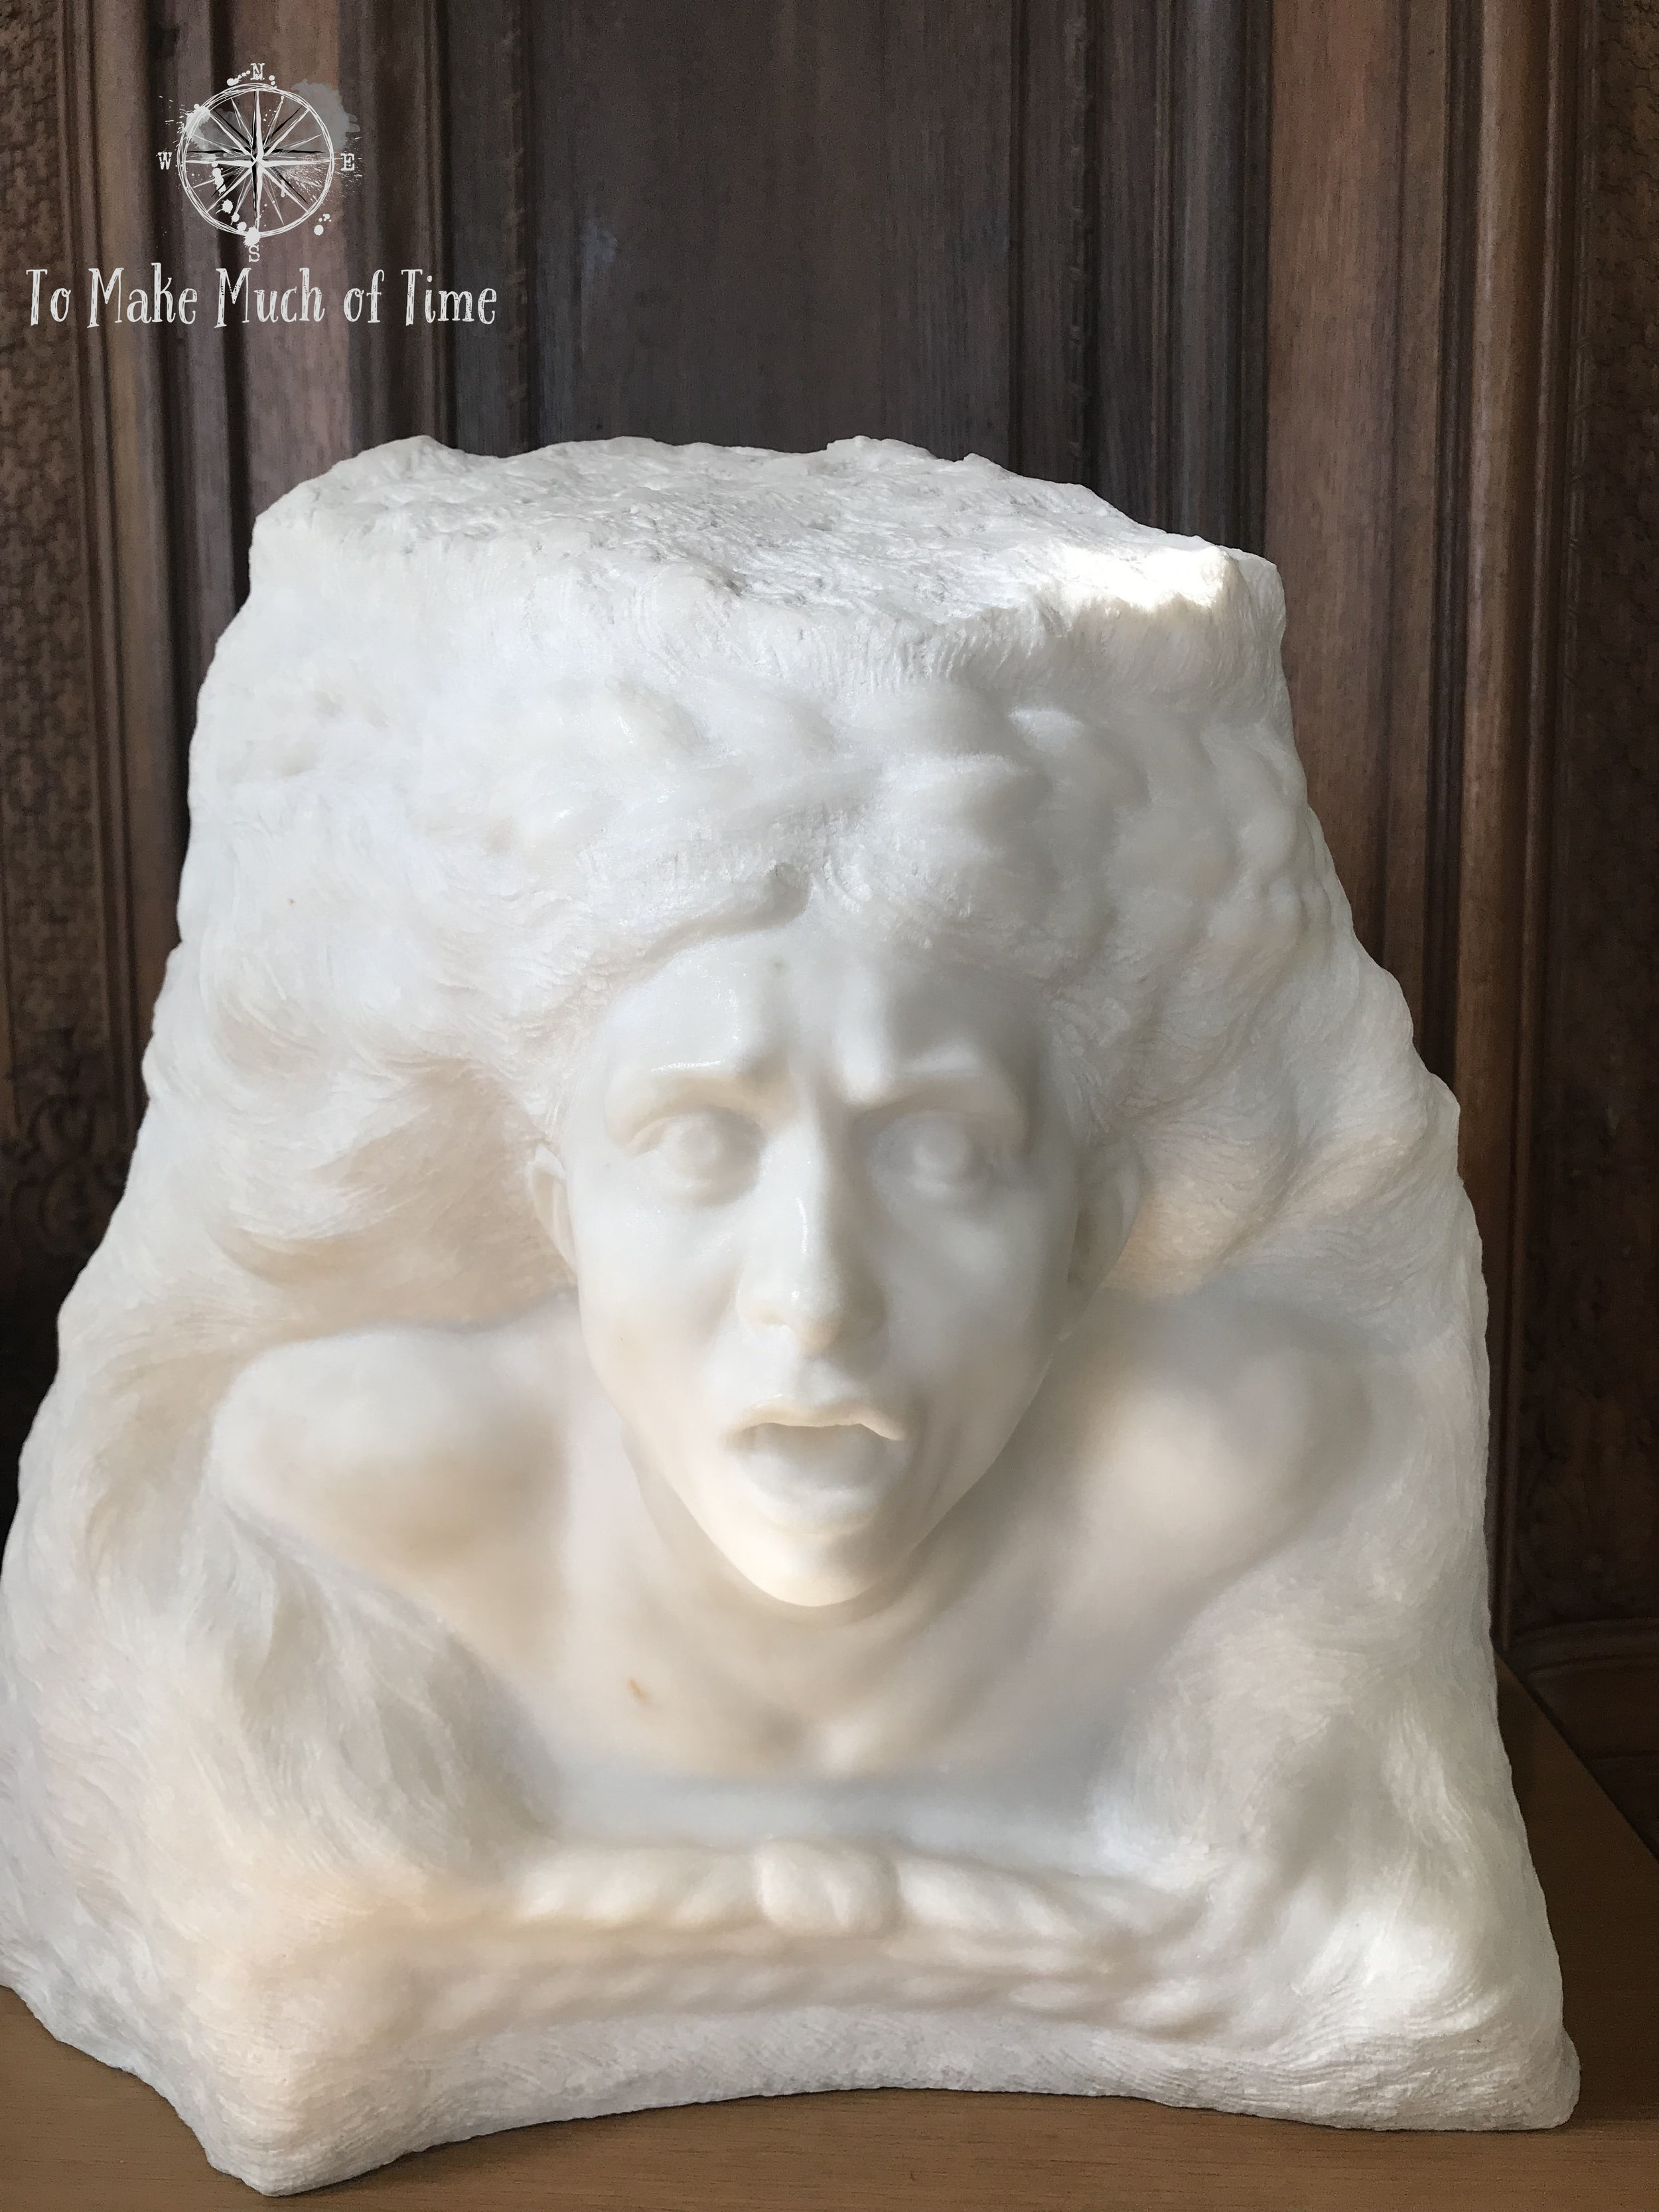 As I looked at this I wondered if the folks at Lucas Films had seen this sculpture before creating the Han Solo frozen in carbonite seen in Star Wars. It does bear a striking resemblance.